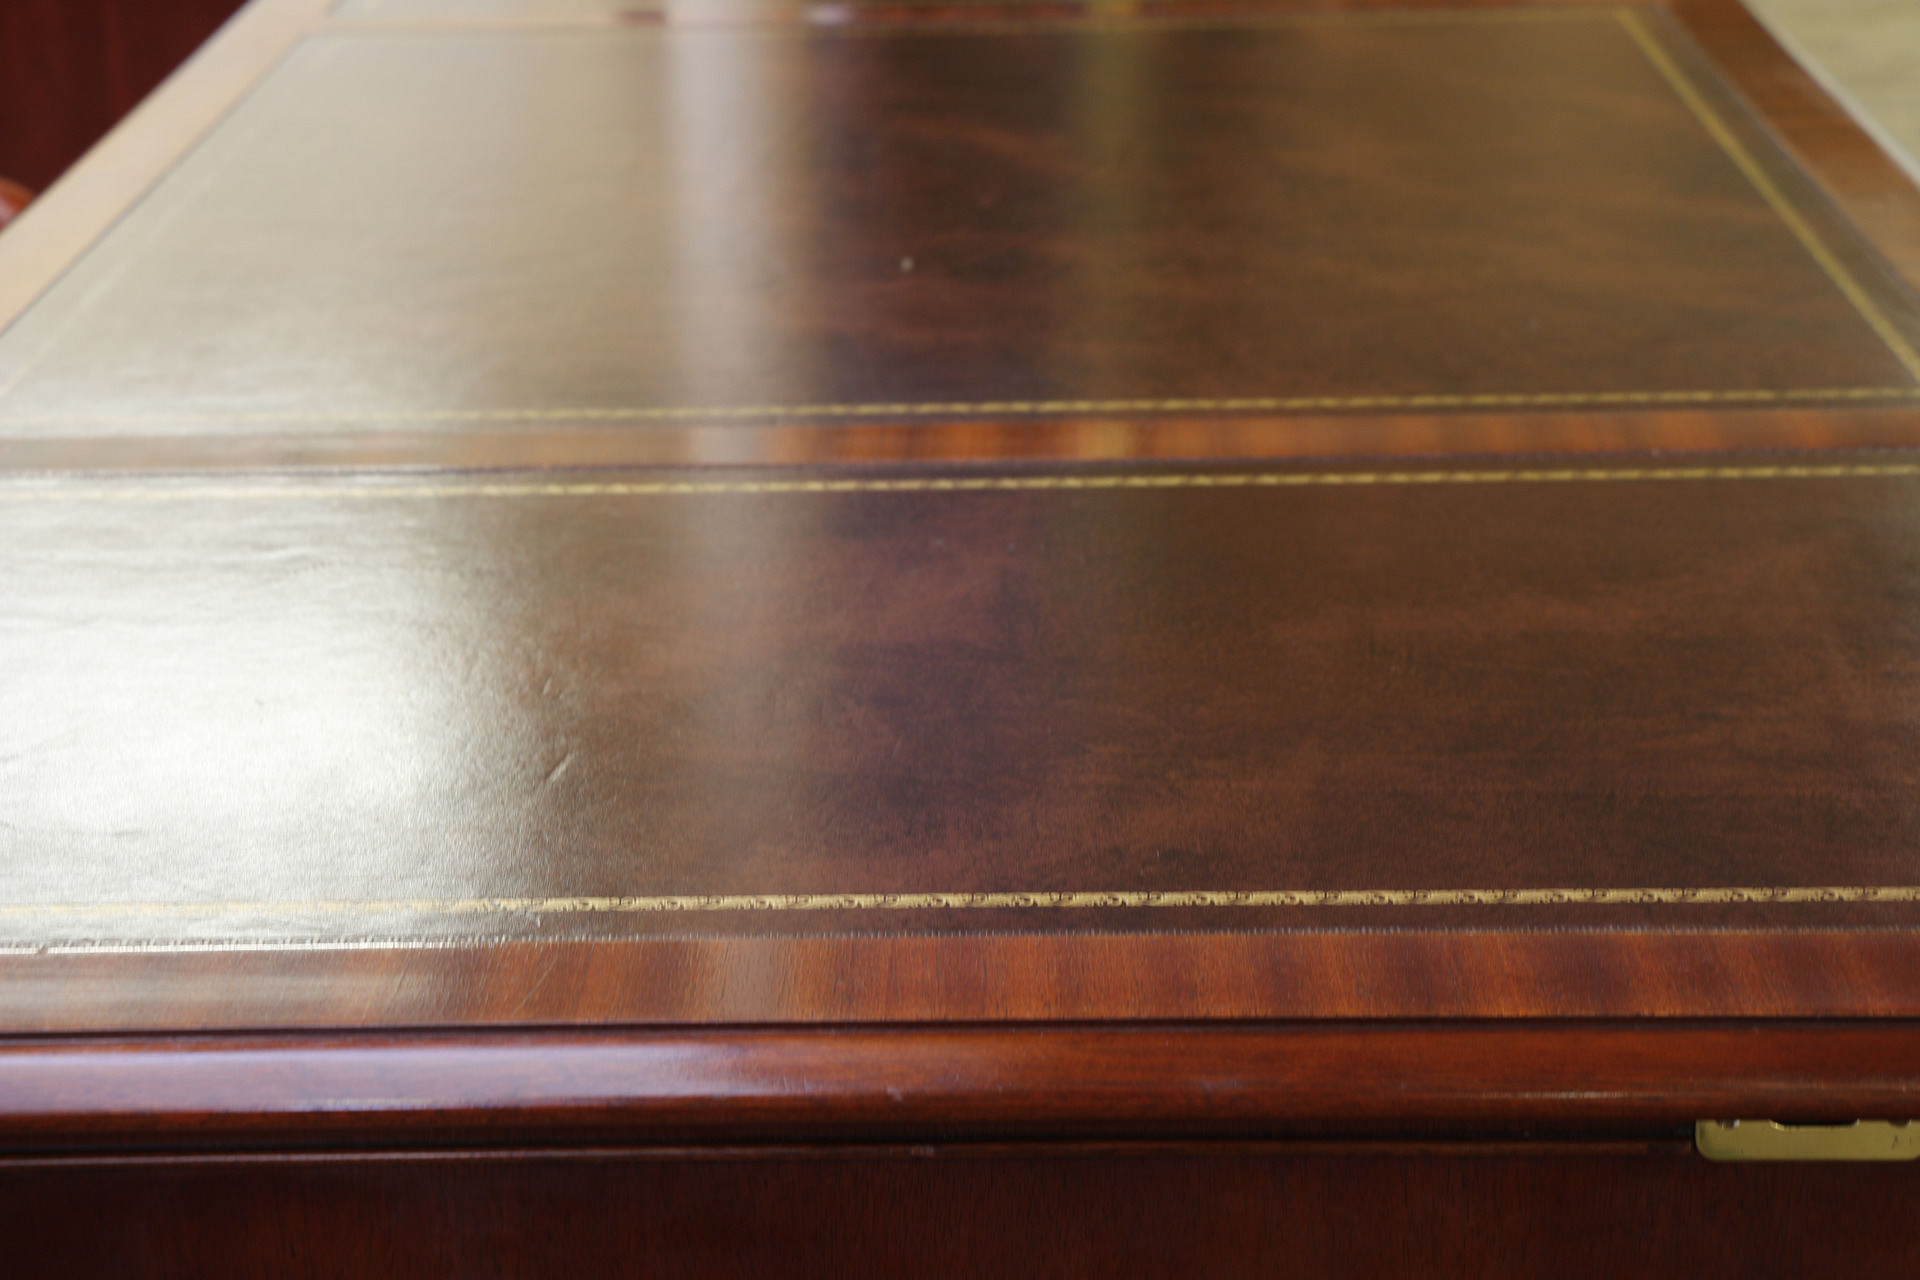 peartreeofficefurniture_peartreeofficefurniture_mg_4228.jpg